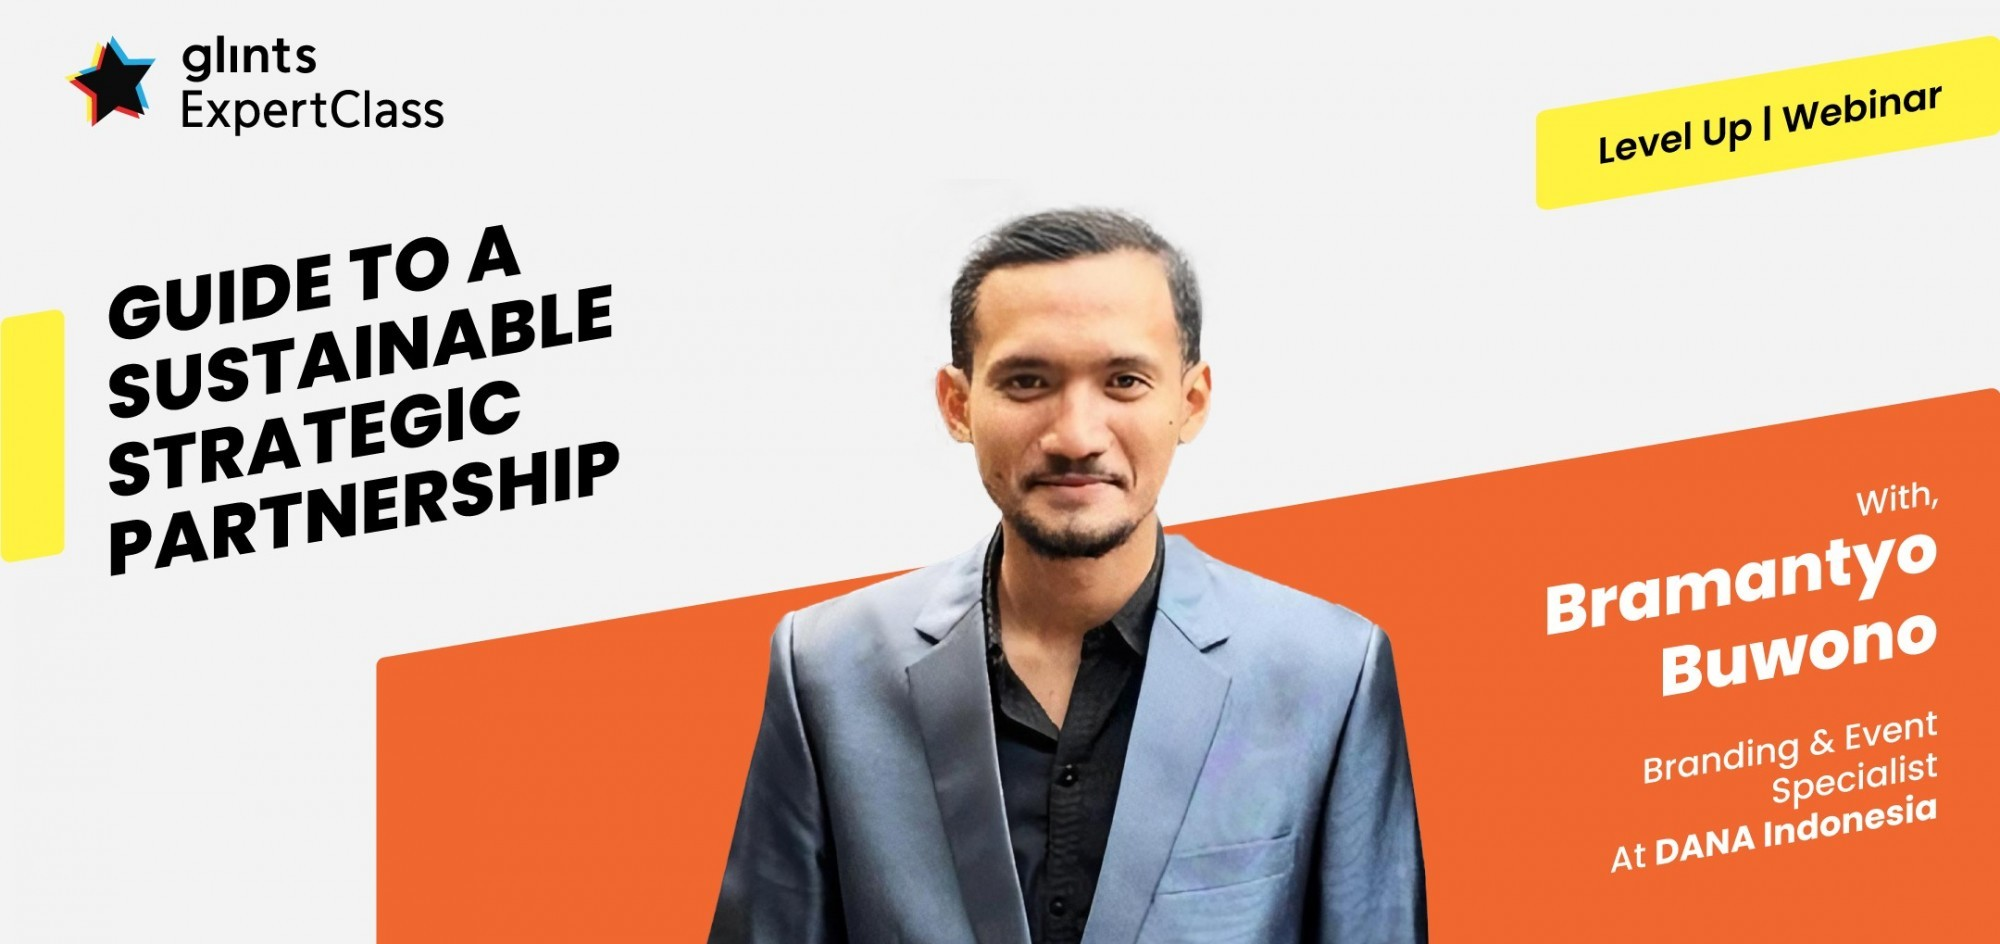 [Online Glints ExpertClass] Guide to a Sustainable Strategic Partnership